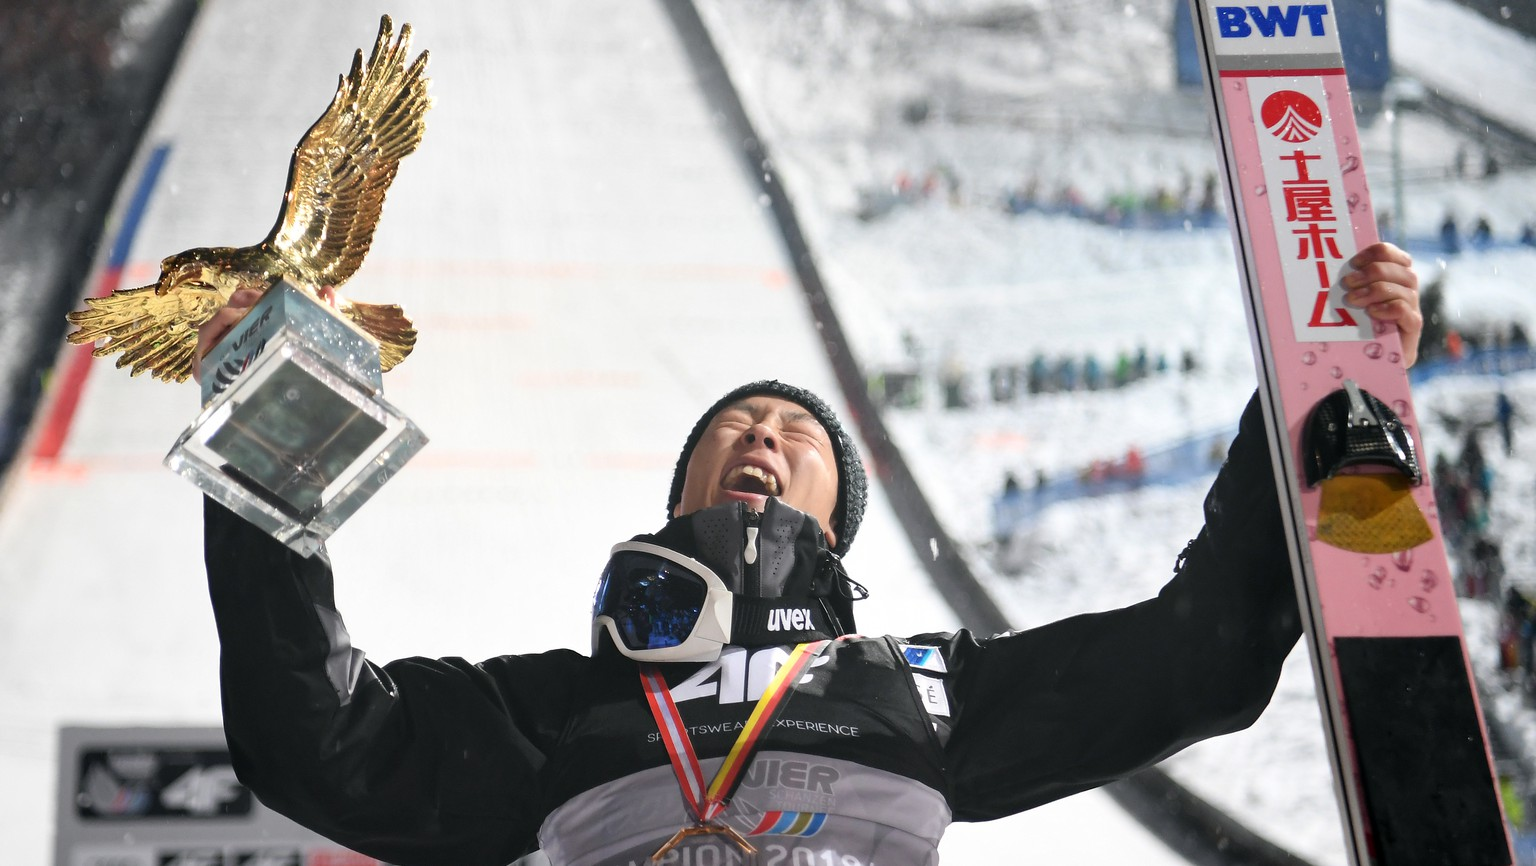 epa07265944 Ryoyu Kobayashi from Japan celebrates with the trophy after winning the 67th Four Hills Tournament competition in Bischofshofen, Austria, 06 January 2018.  EPA/CHRISTIAN BRUNA